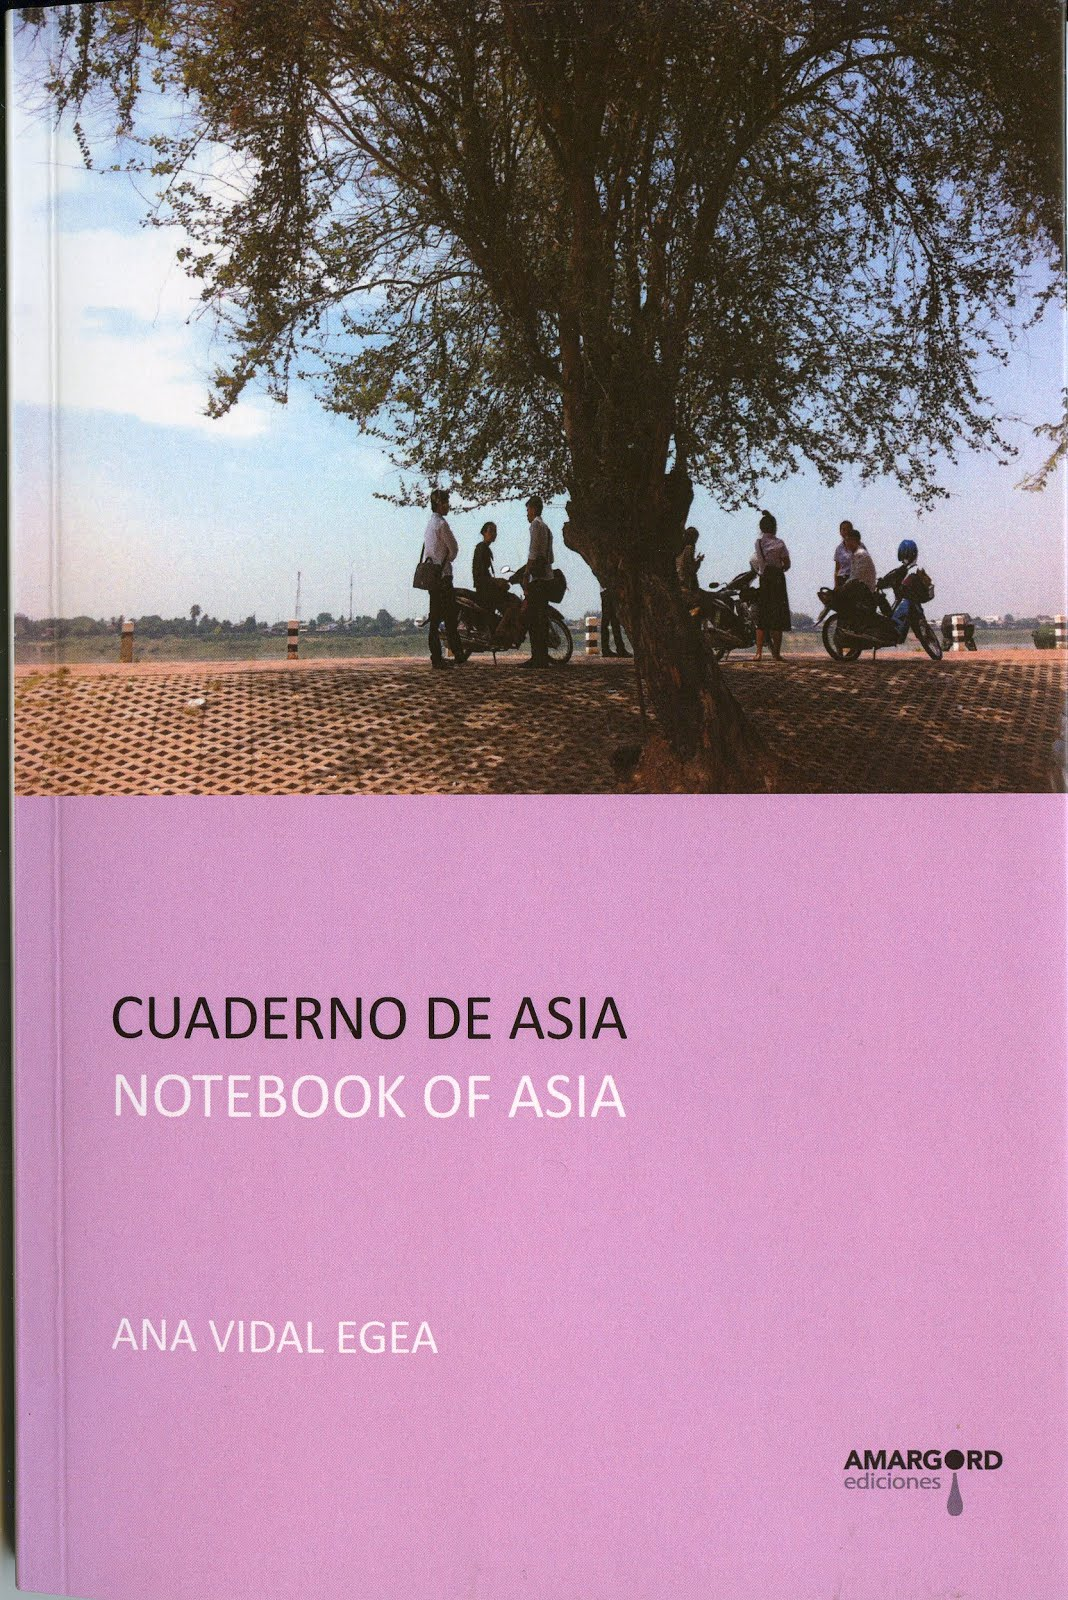 CUADERNO DE ASIA / NOTEBOOK OF ASIA (Amargord, 2016)